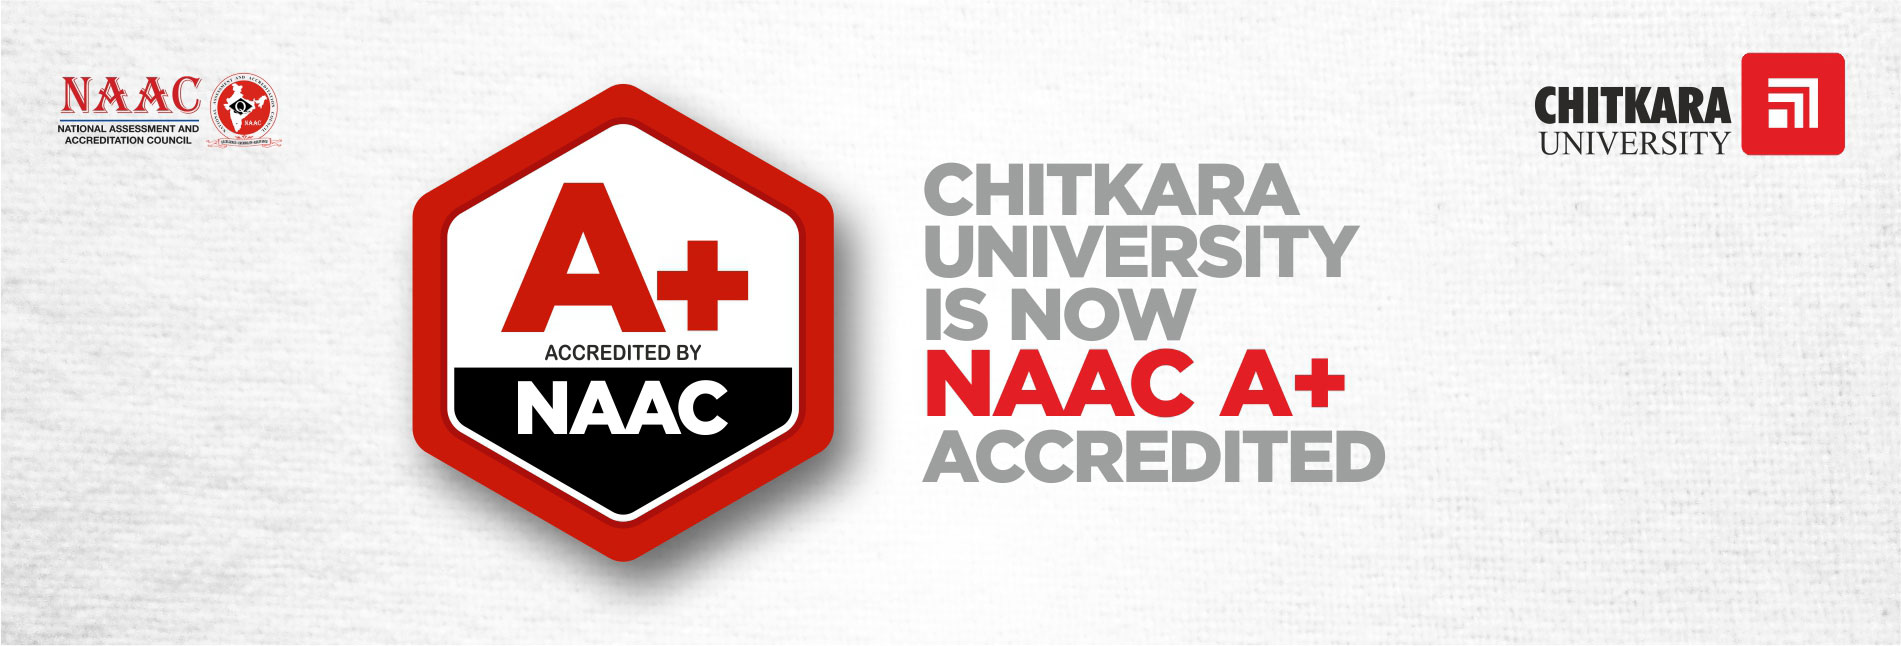 Chitkara University is now NAAC A+ Accredited